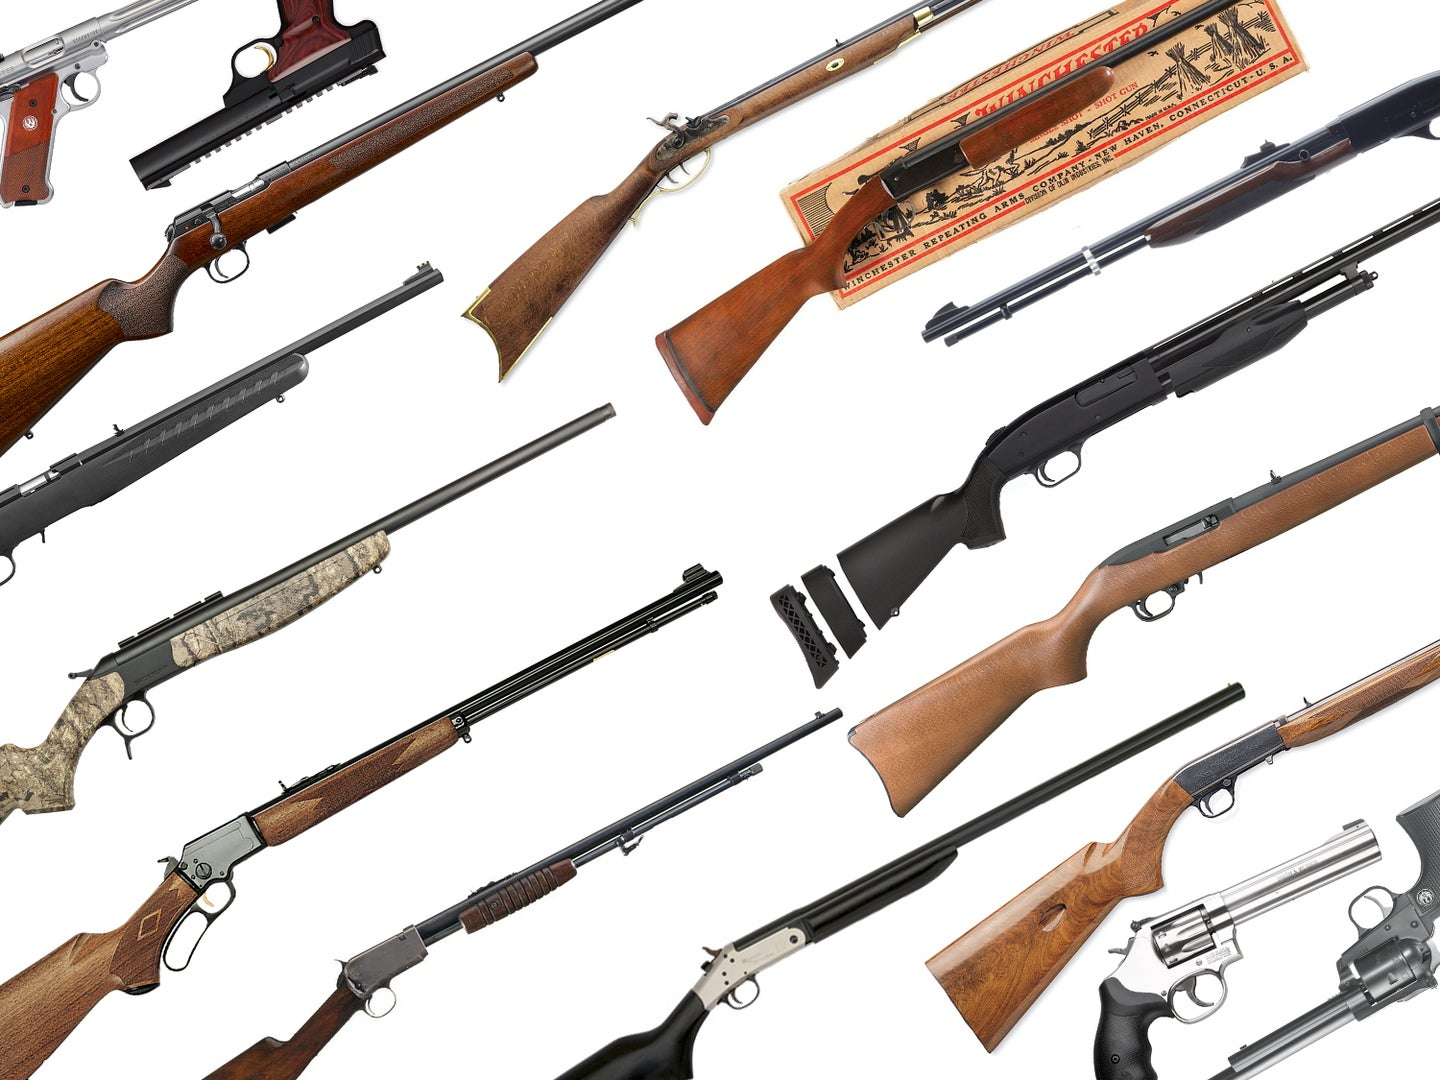 A collection of squirrel hunting rifles, shotguns, and handguns on a white background.